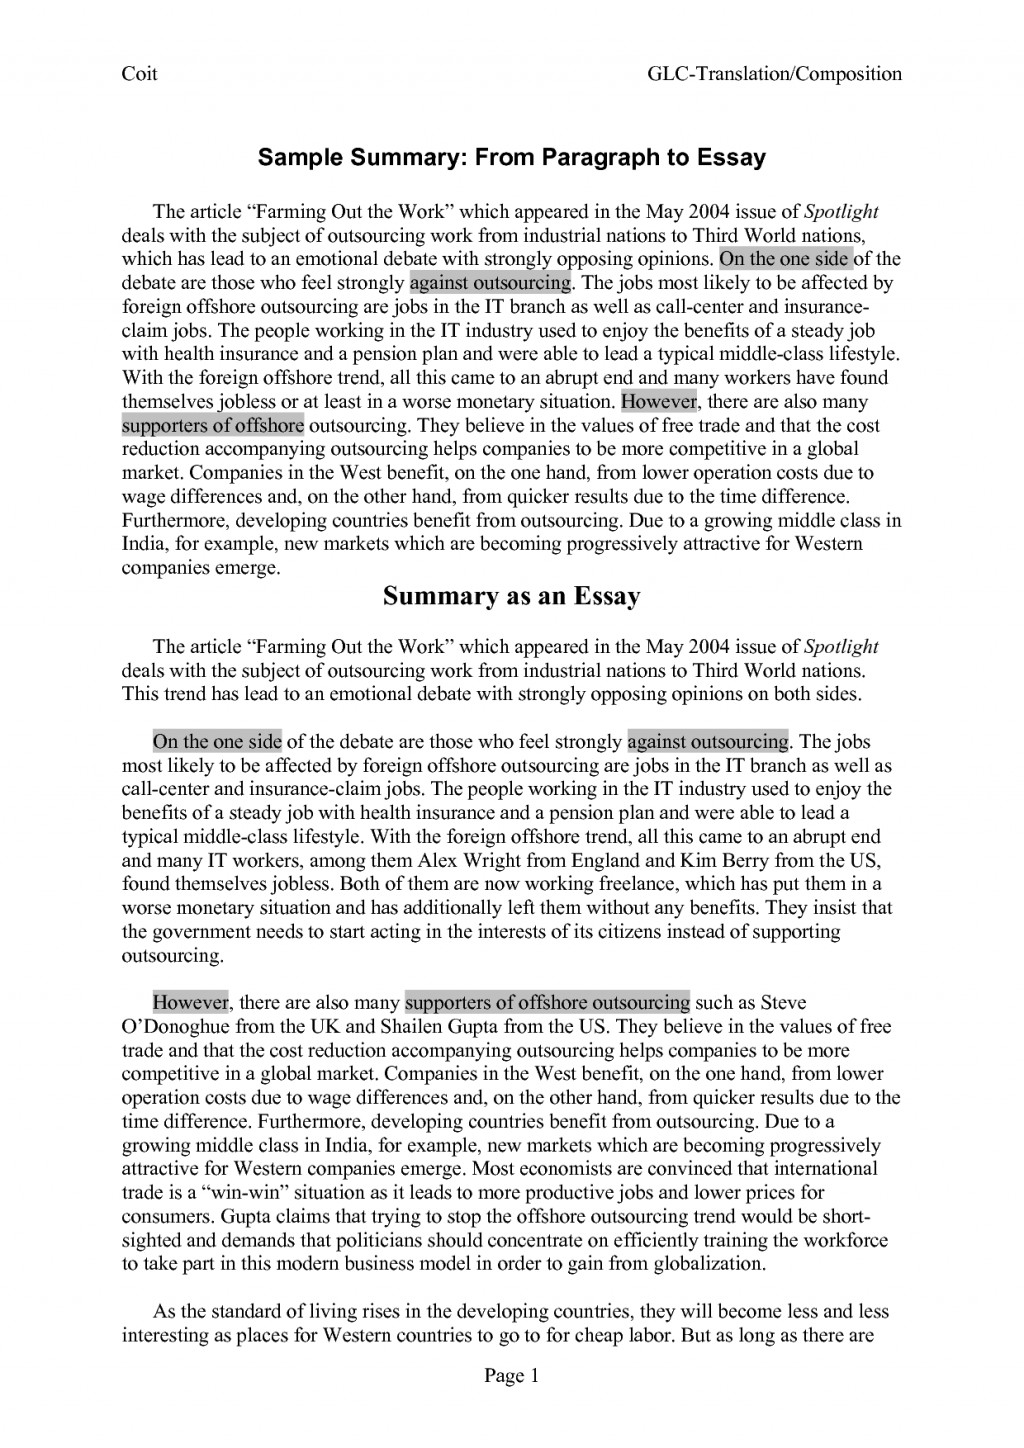 005 Essay Example Sample Summary Papers 248300 Imposing Form 4 Paper Examples Apa Critical Large